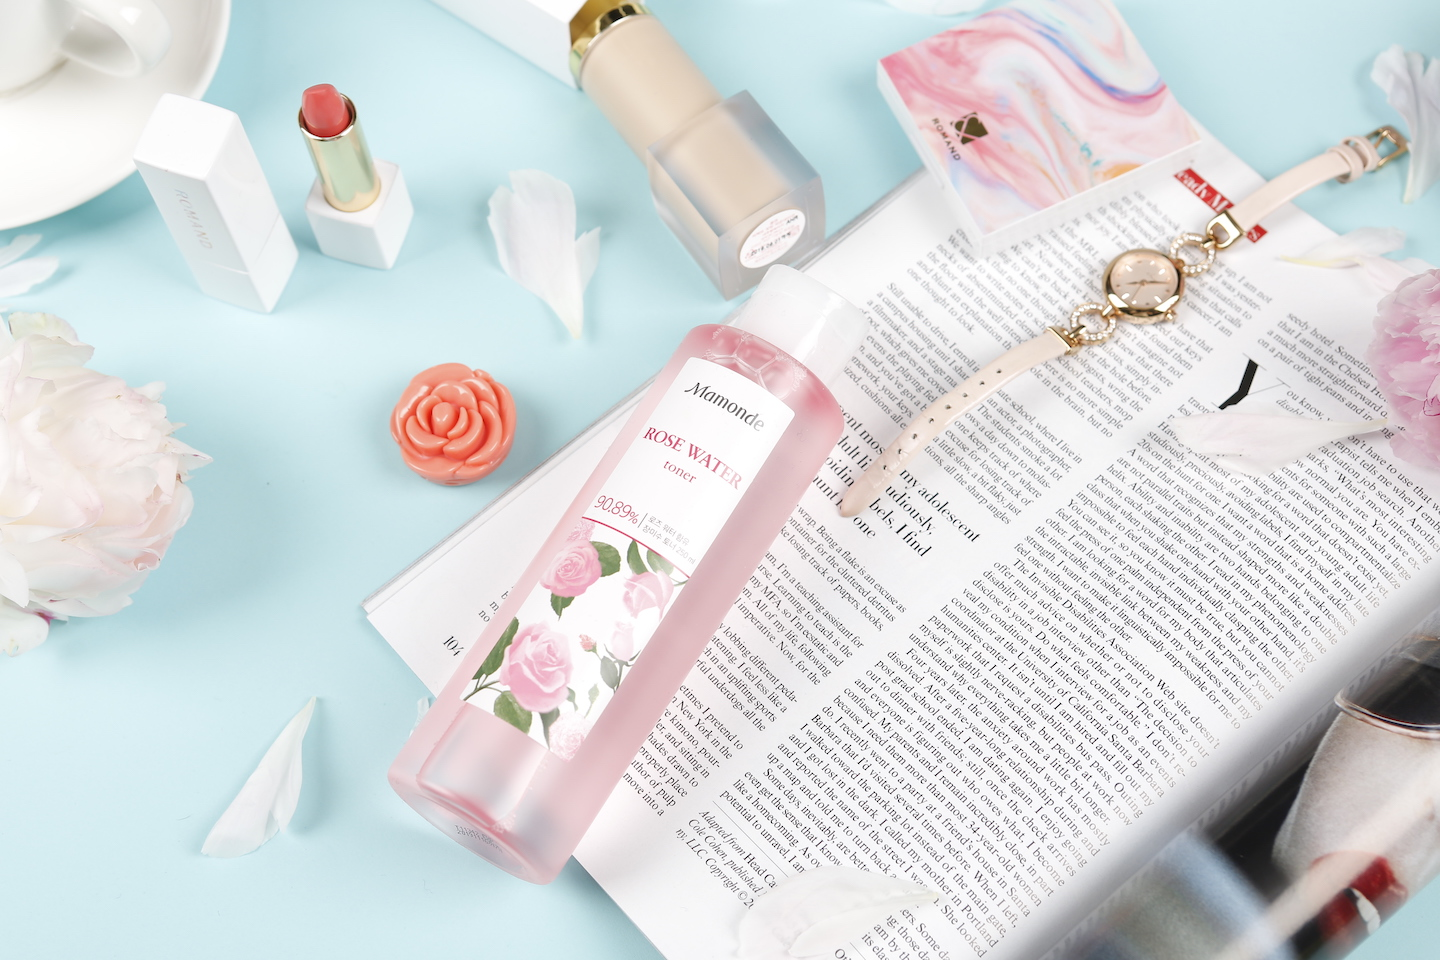 mamonde rose water toner k-beauty convert